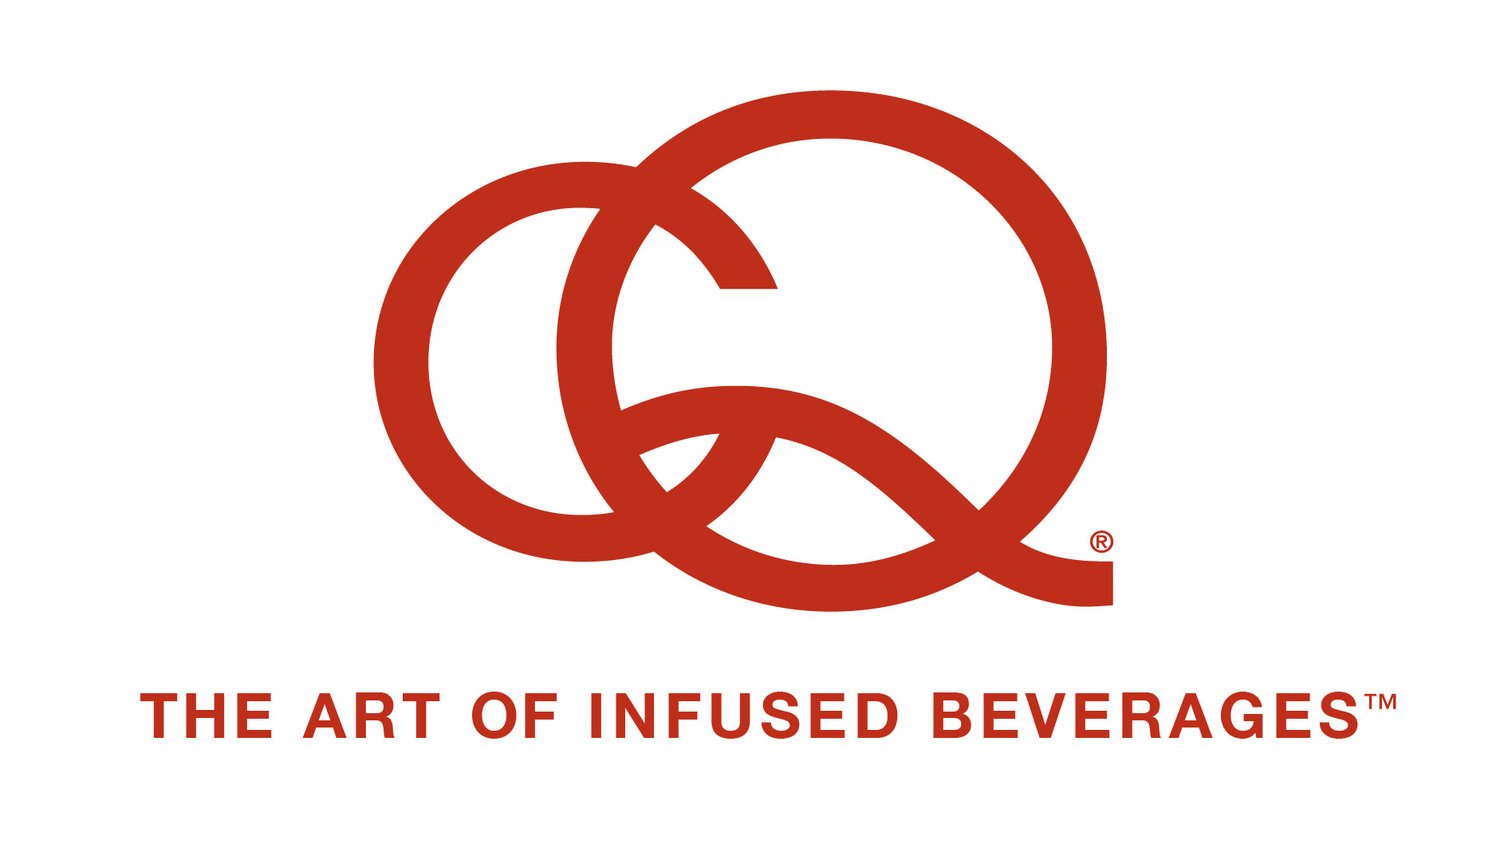 CQ Infused Beverages